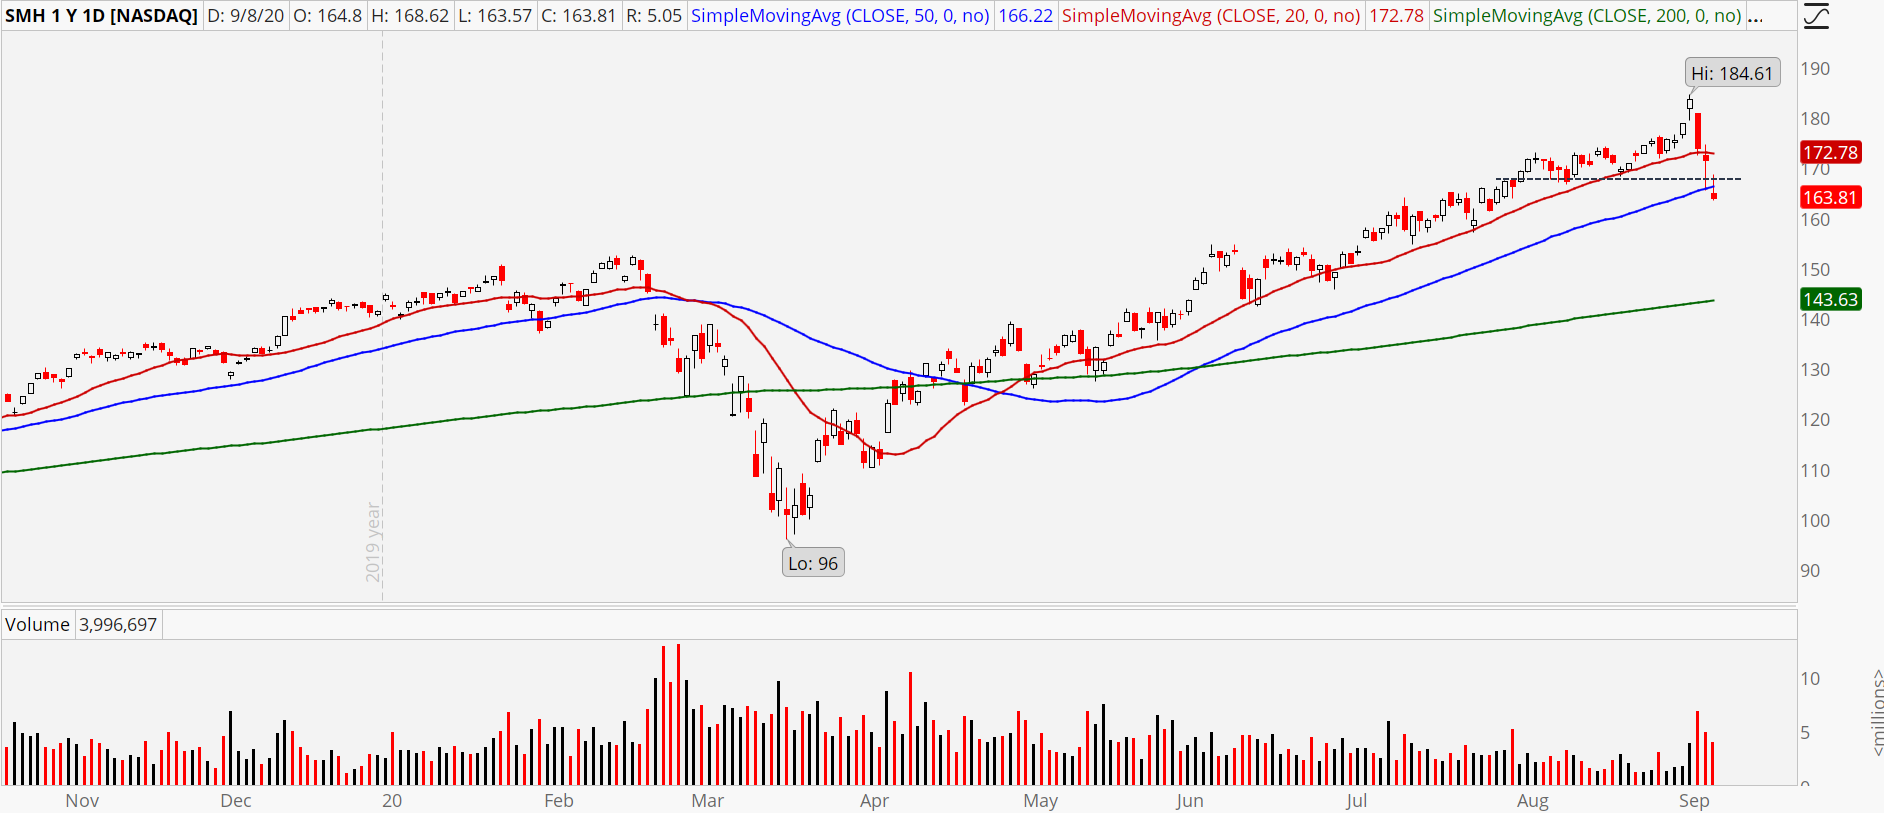 Semiconductor ETF (SMH) showing break of 50-day moving average